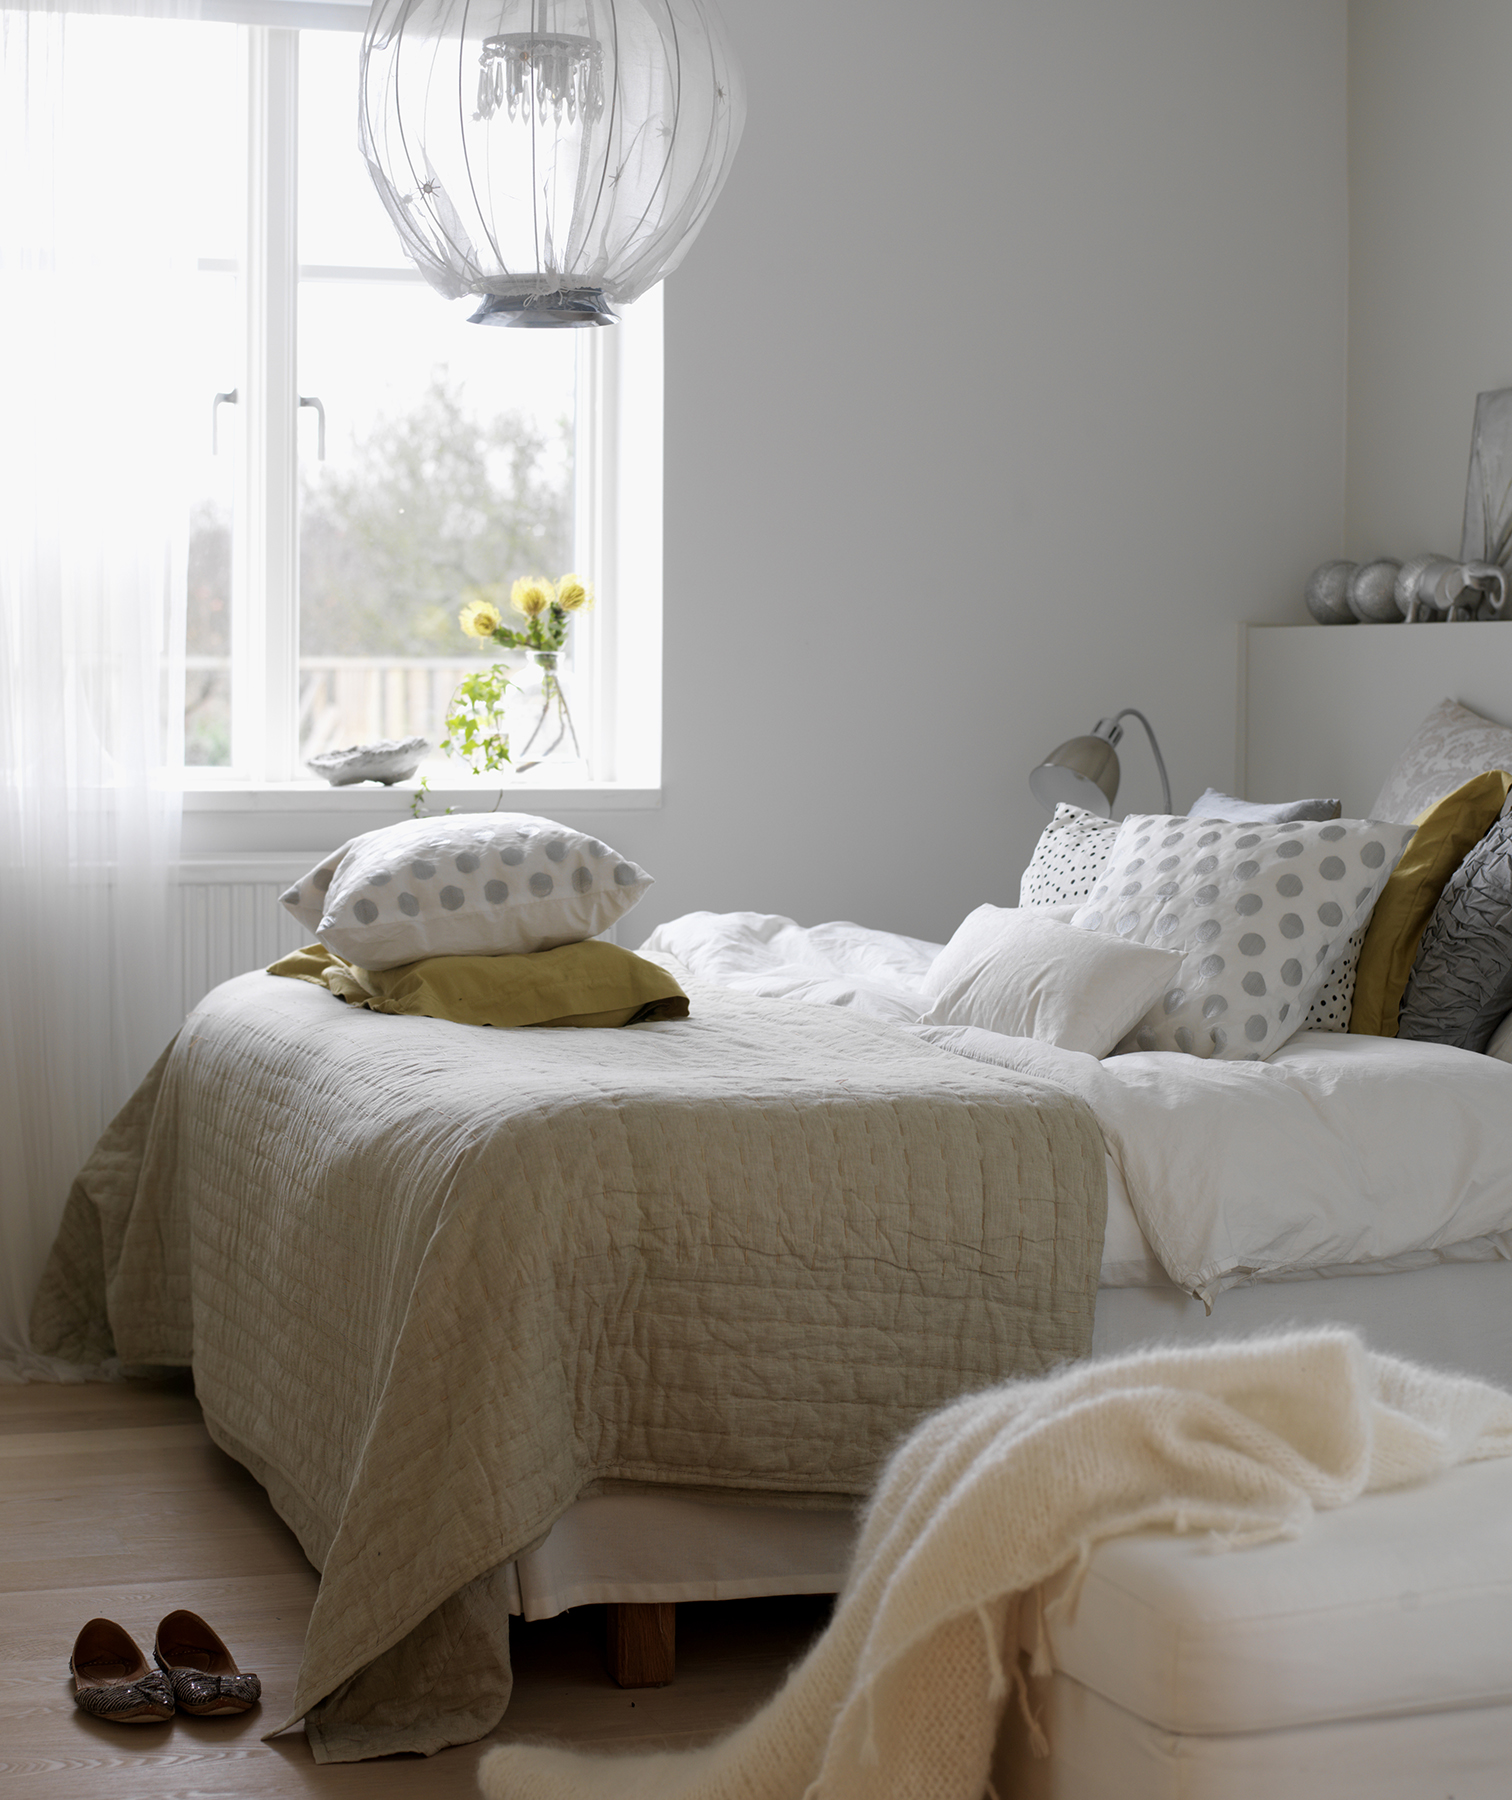 Little Decor Ideas To Make At Home: 23 Decorating Tricks For Your Bedroom